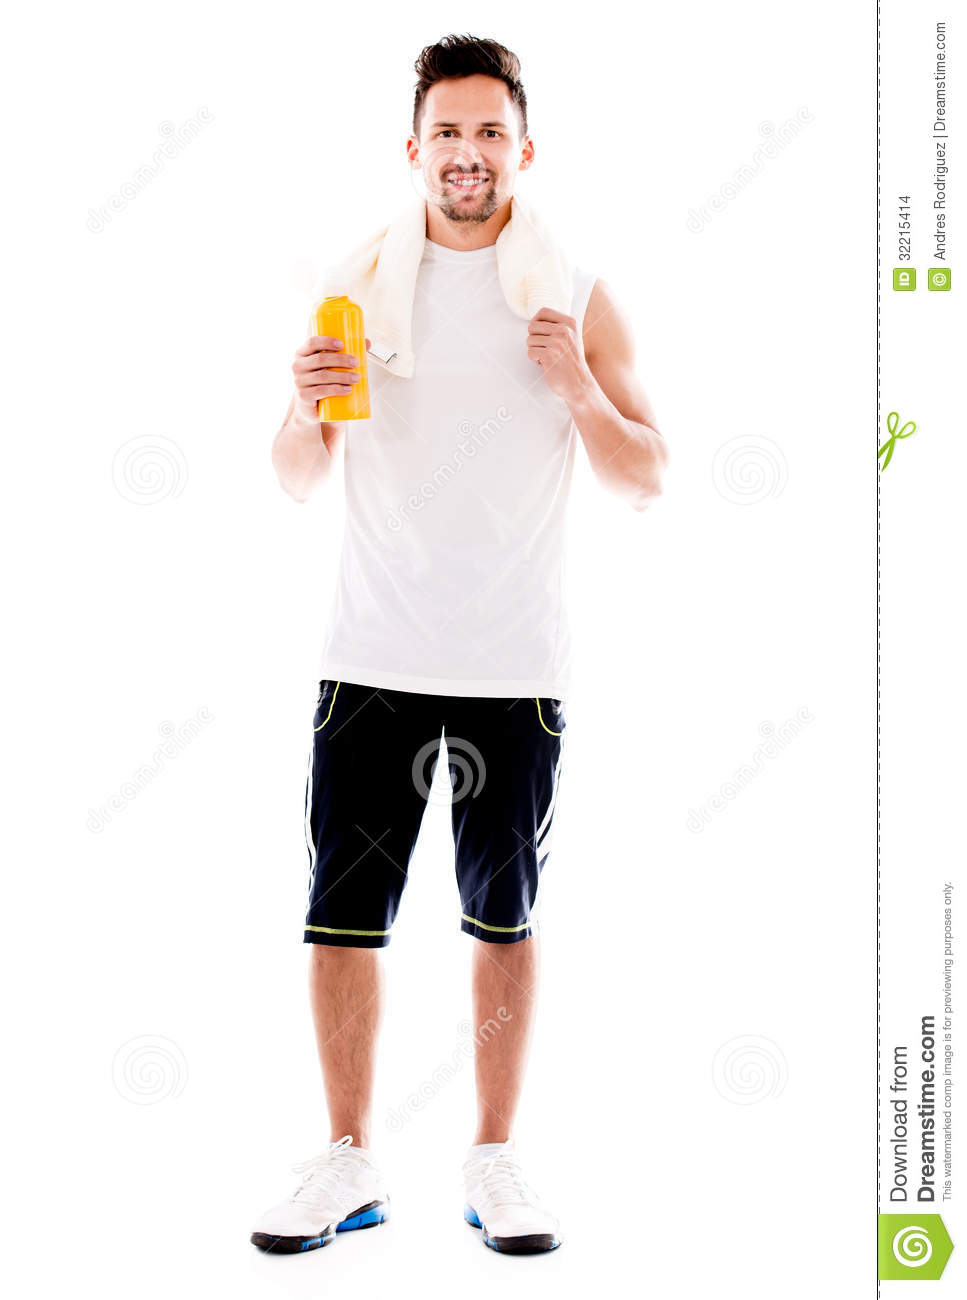 Fit person clipart svg royalty free stock Fit Man After Workout Stock Images - Image: 32215414 svg royalty free stock